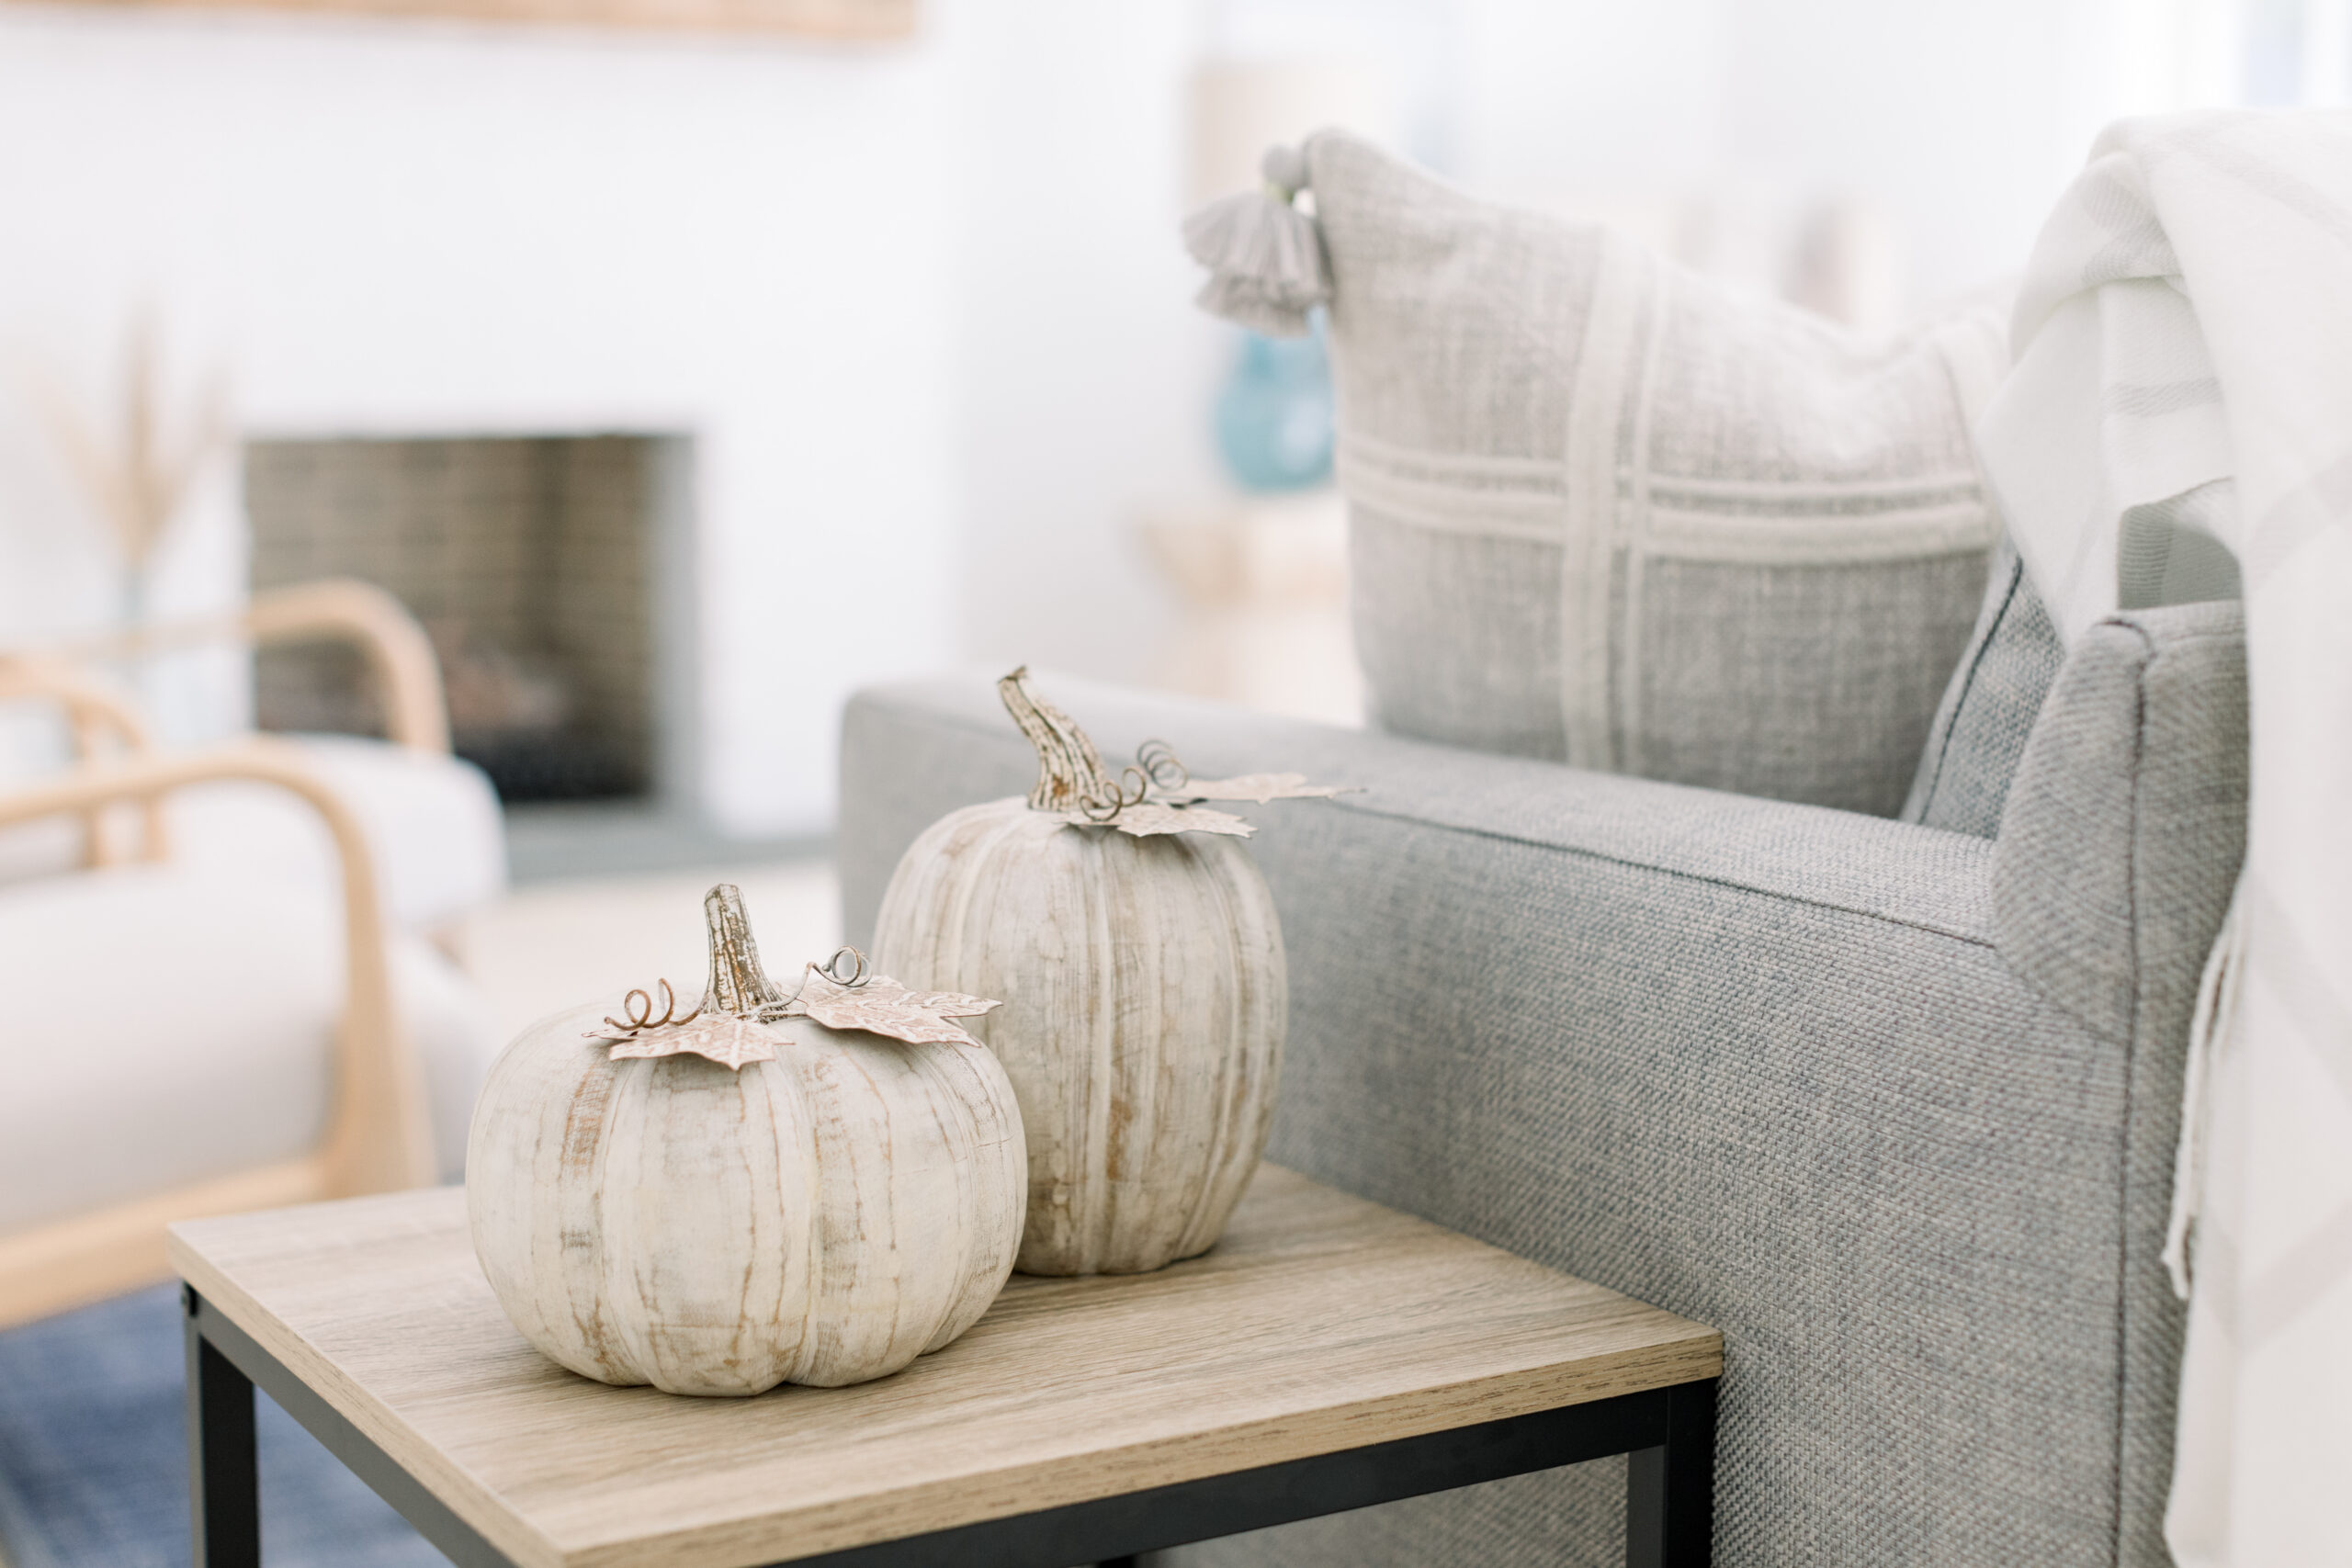 Connecticut life and style blogger Lauren McBride shares the launch of her harvest collection for her self-named QVC line.